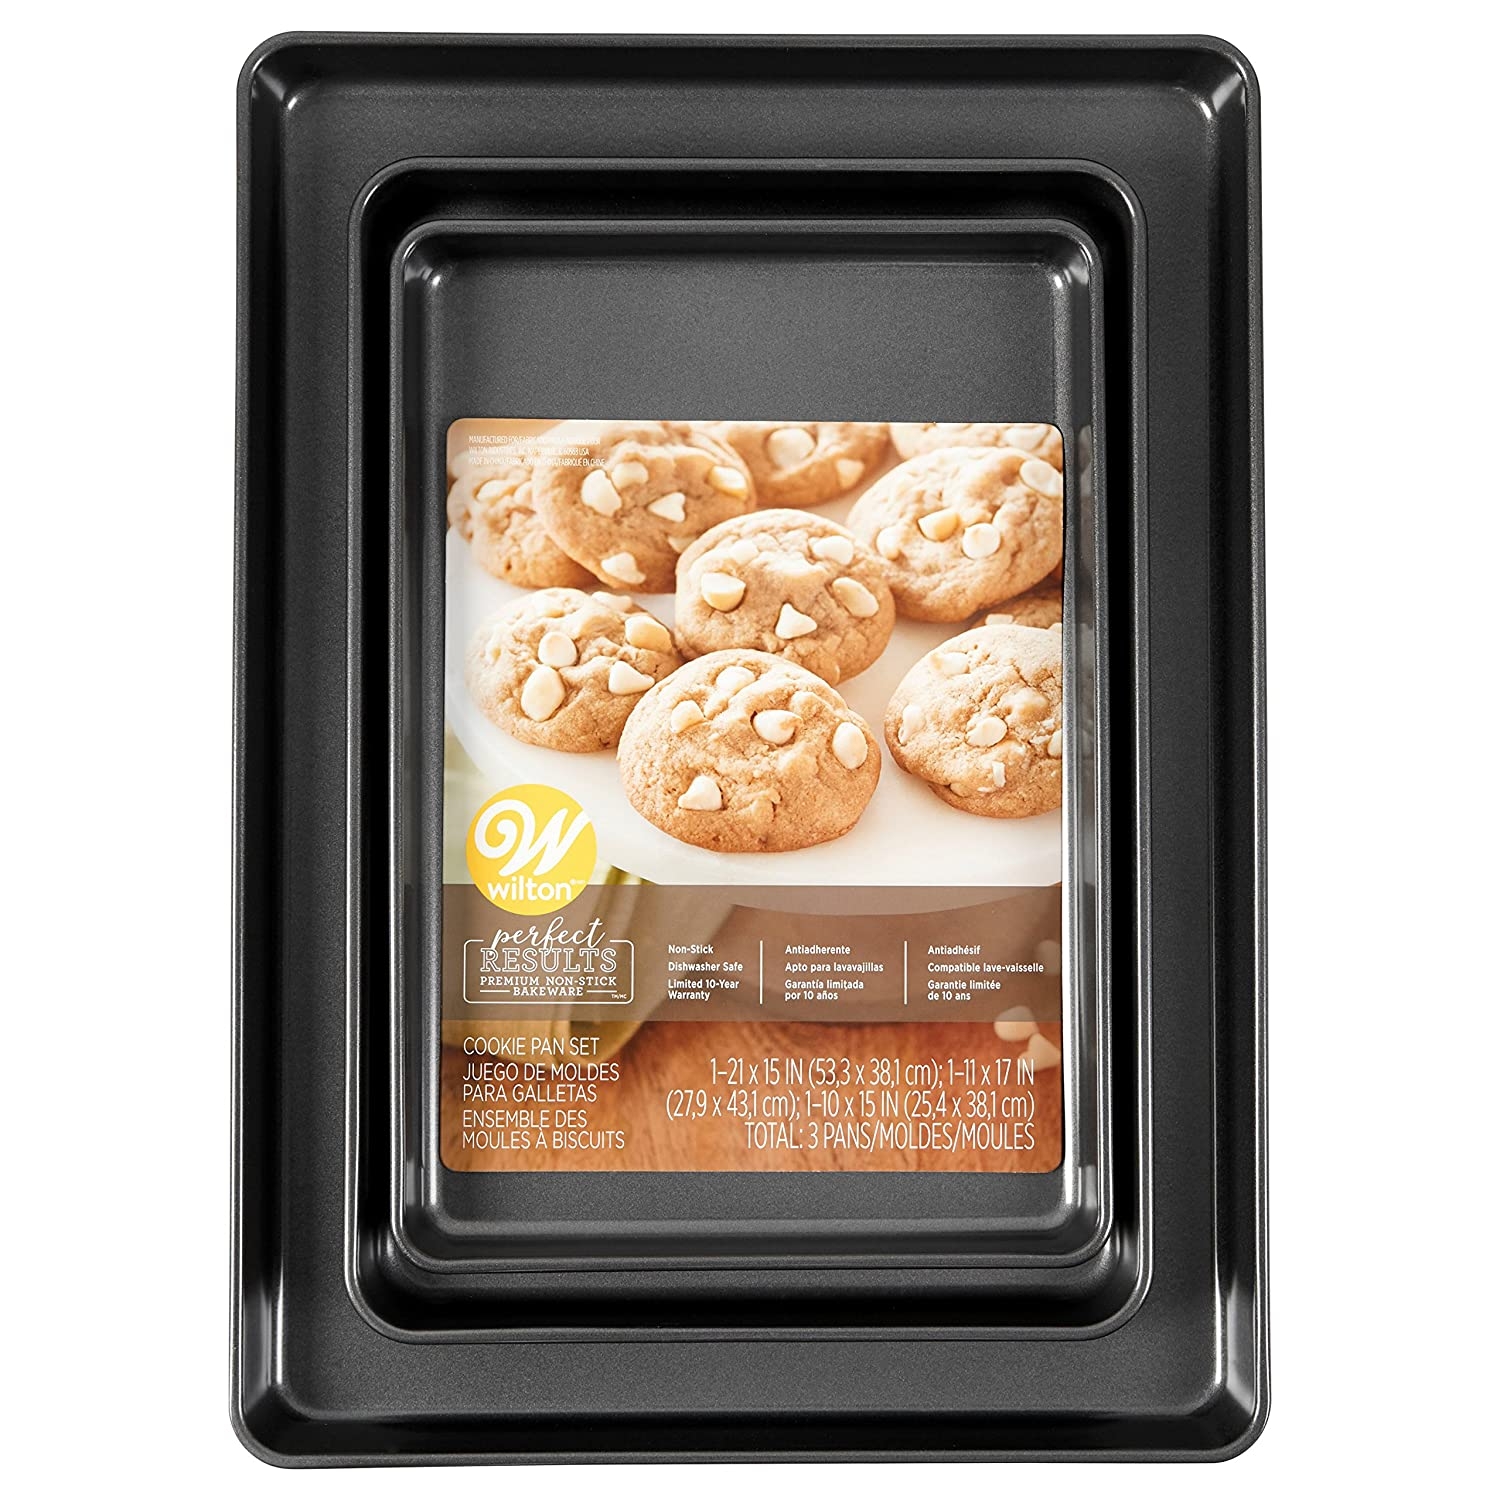 Amazon.com: Wilton Perfect Results Premium Non-Stick Bakeware Cookie Pan Set, Whether Baking for a Kids Party, the Holidays or Family, These Baking Sheets ...